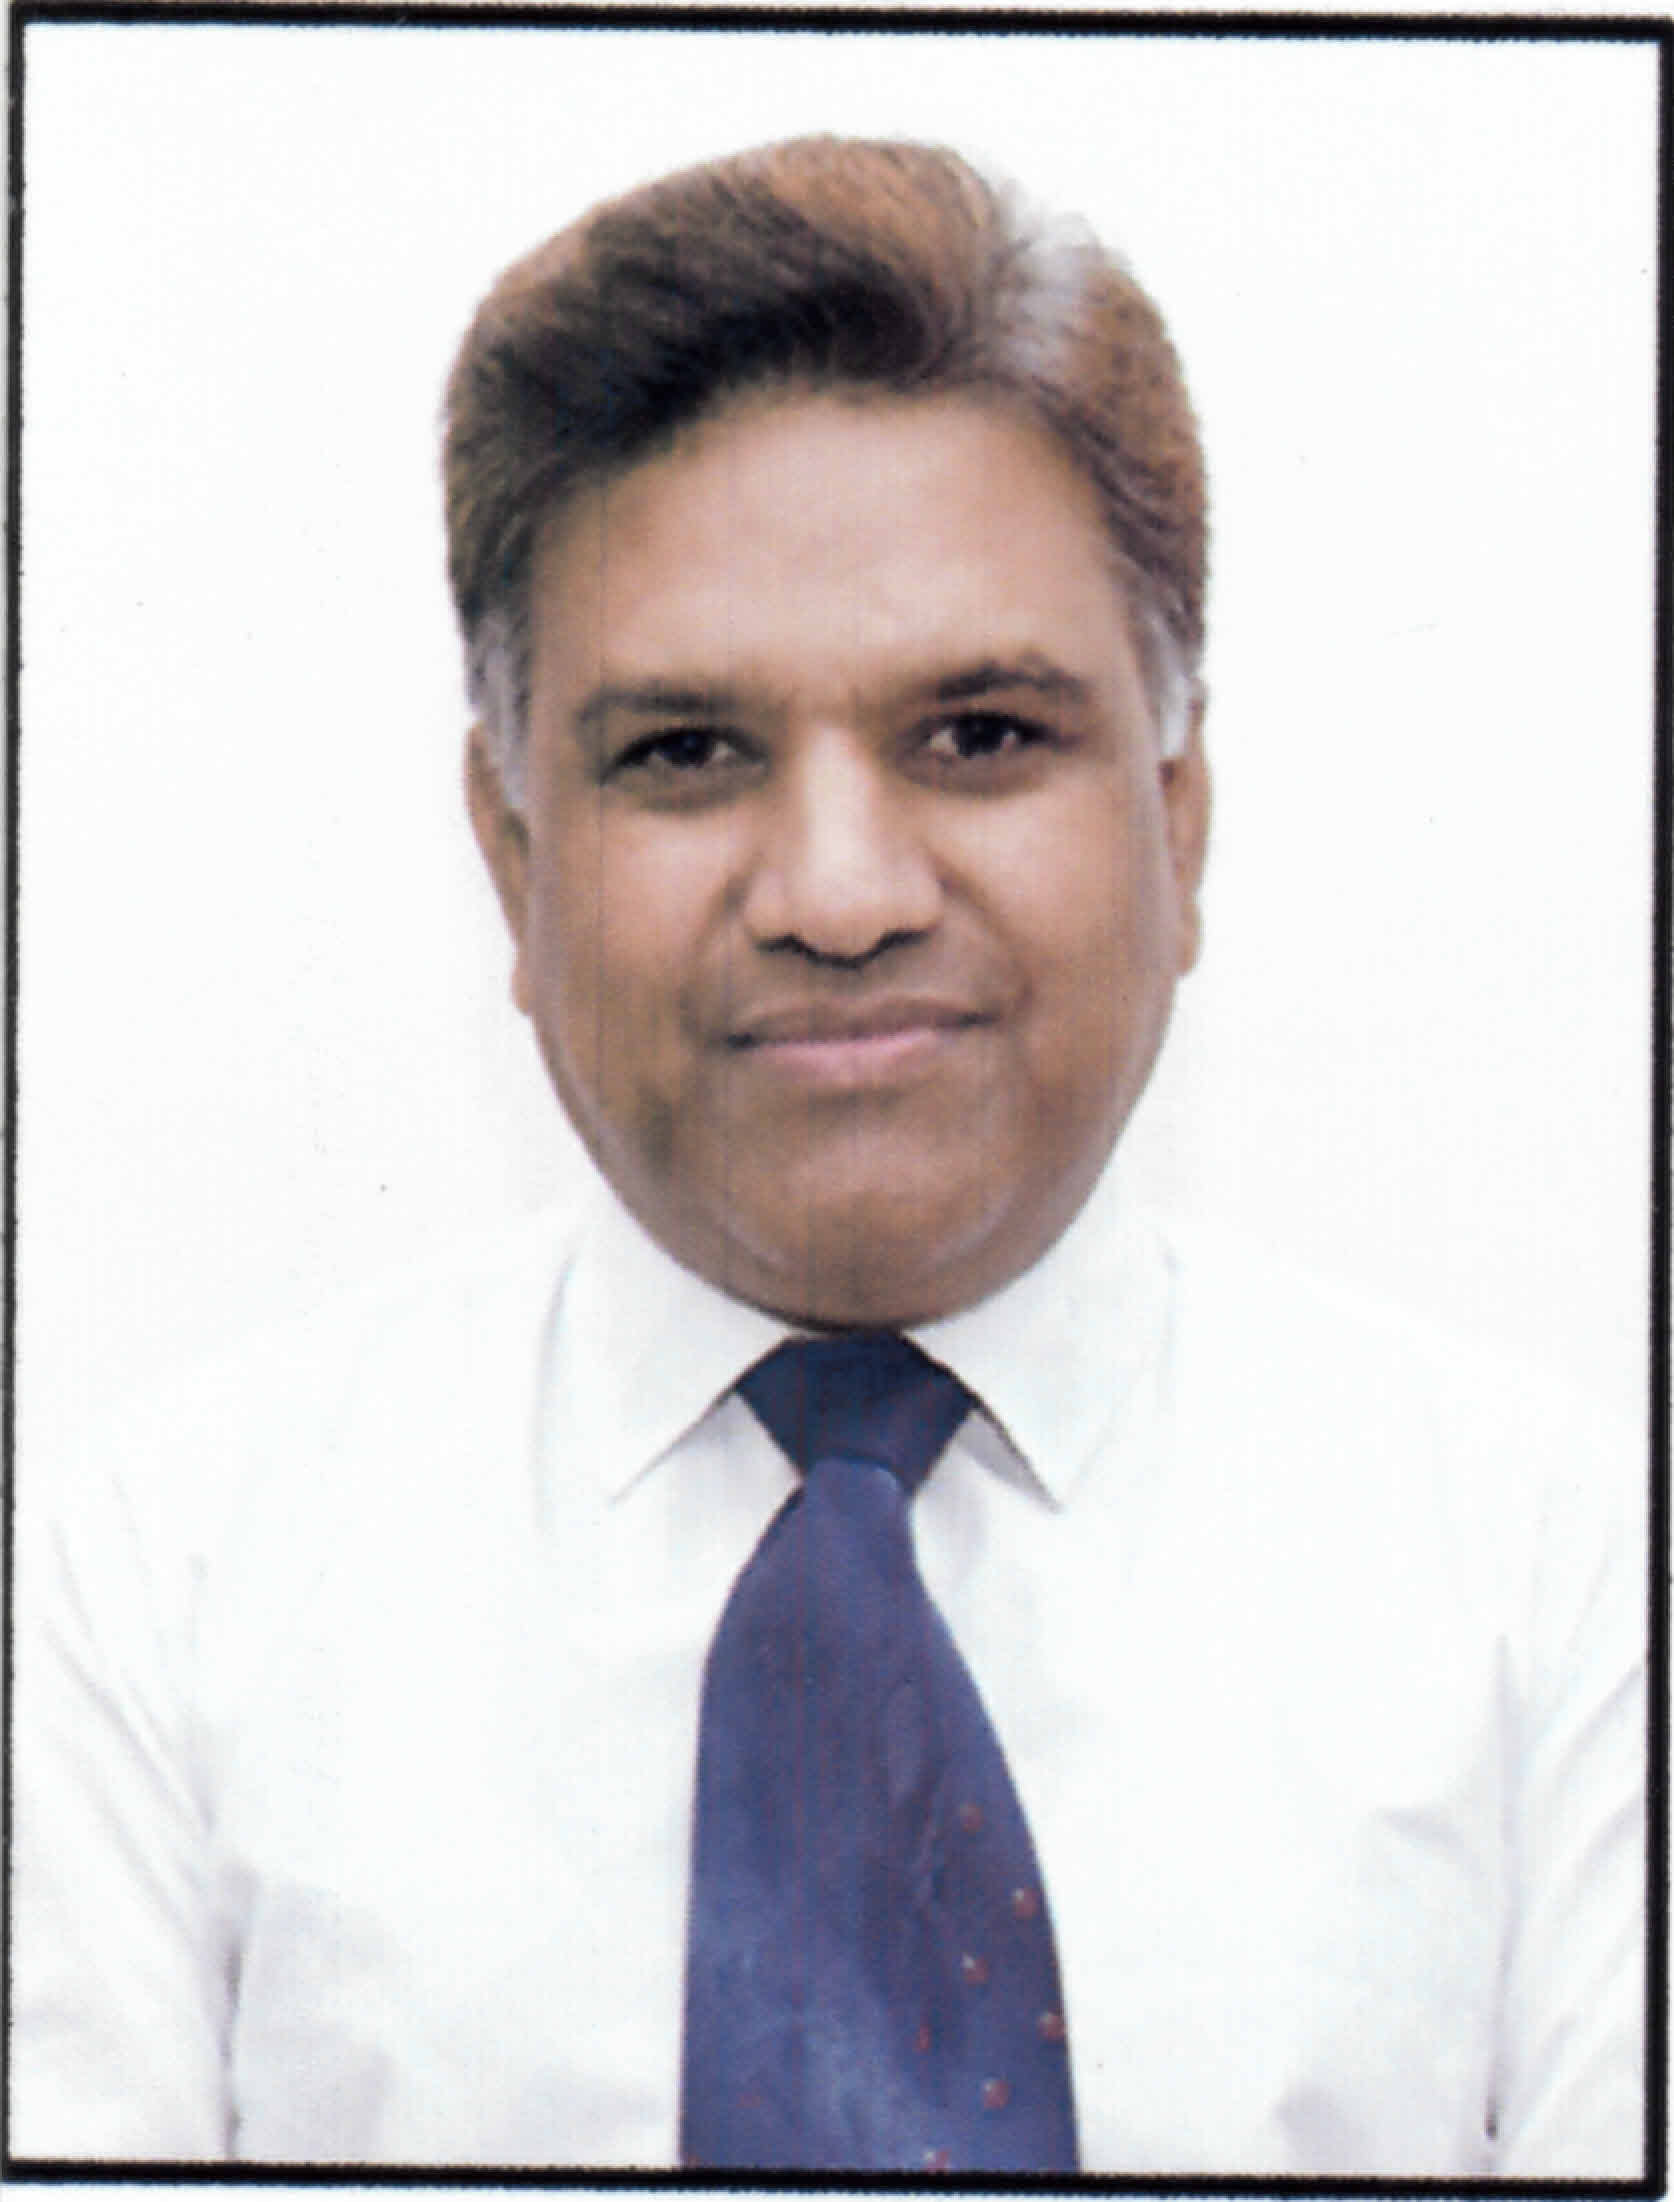 Mr. Ashok Kumar Jain